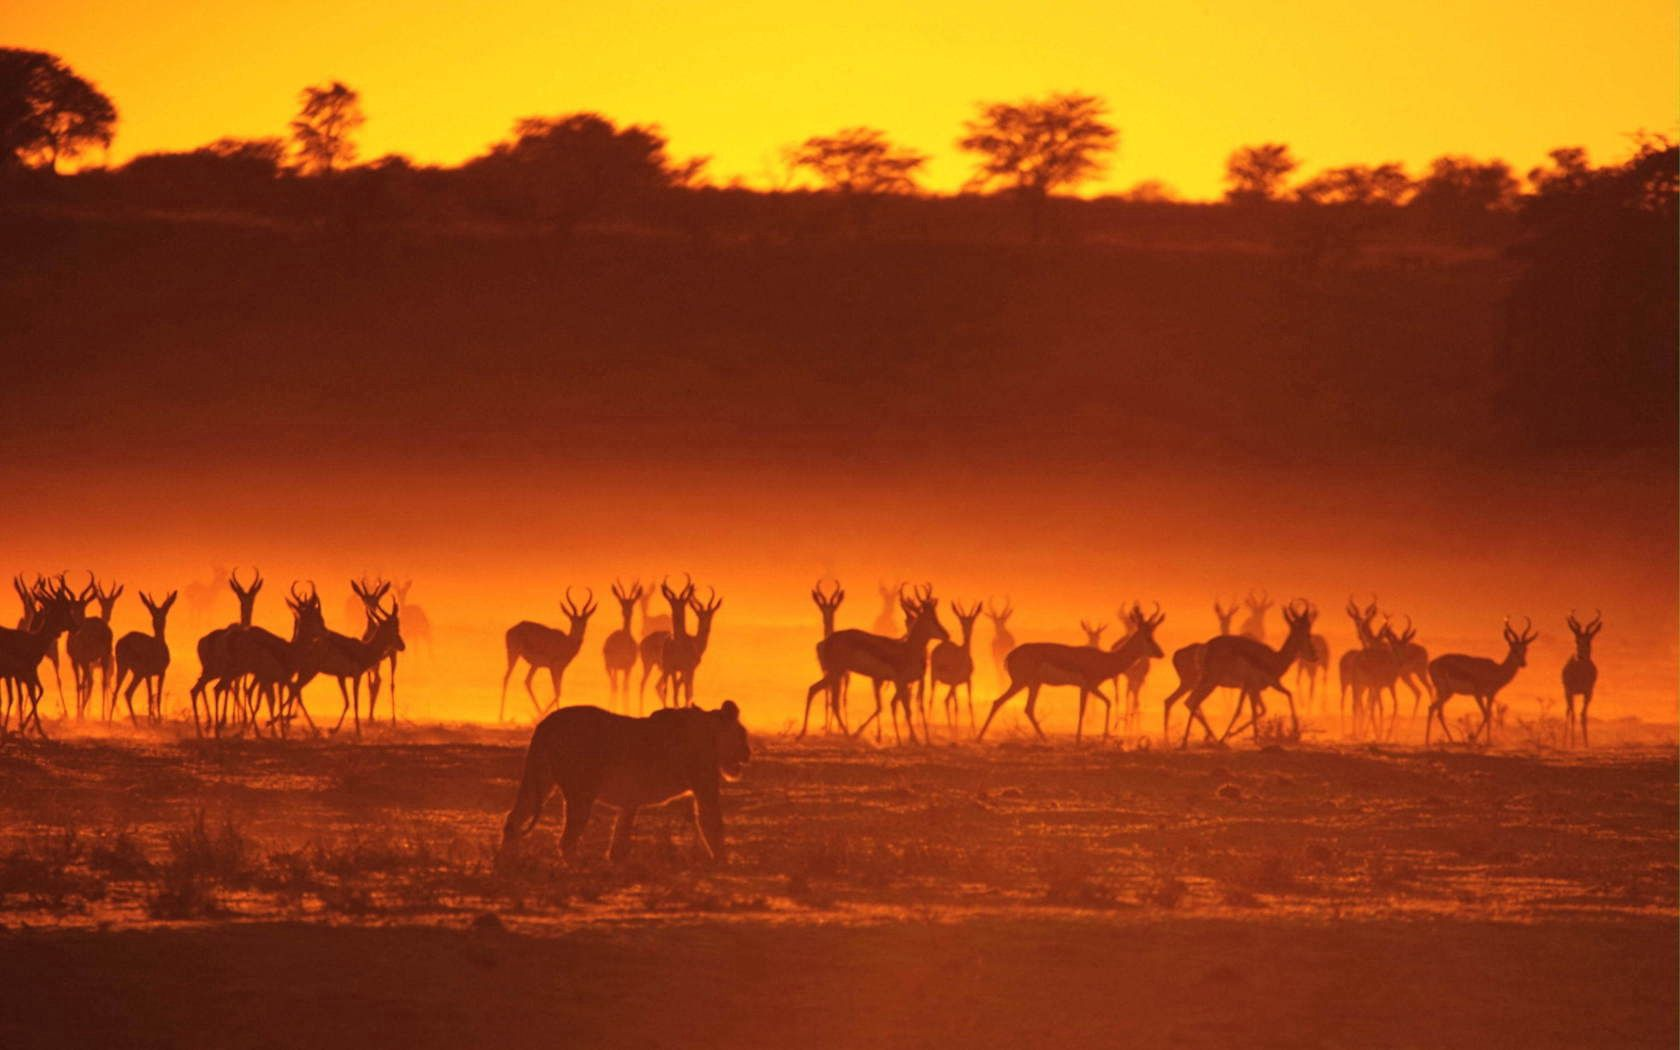 139733 download wallpaper Animals, Antelope, Lioness, Hunting, Hunt, Stroll, Sunset, Silhouettes screensavers and pictures for free